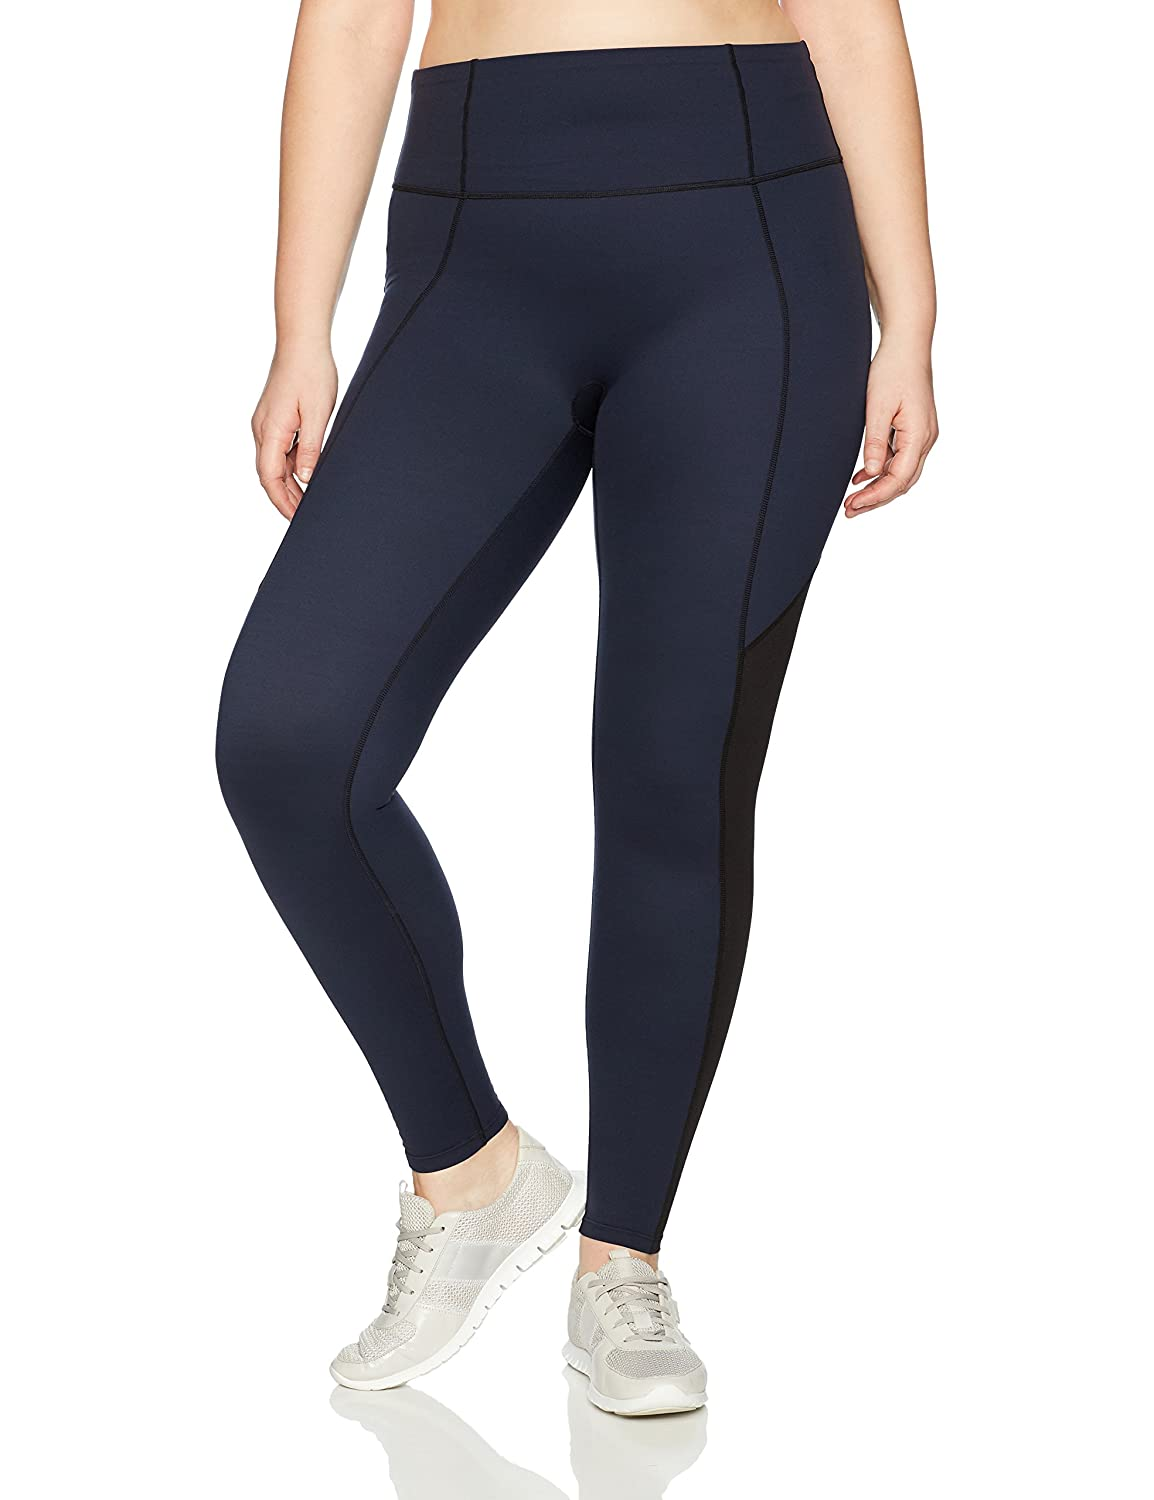 SPANX Womens Active Compression Full Length Leggings 1831-P